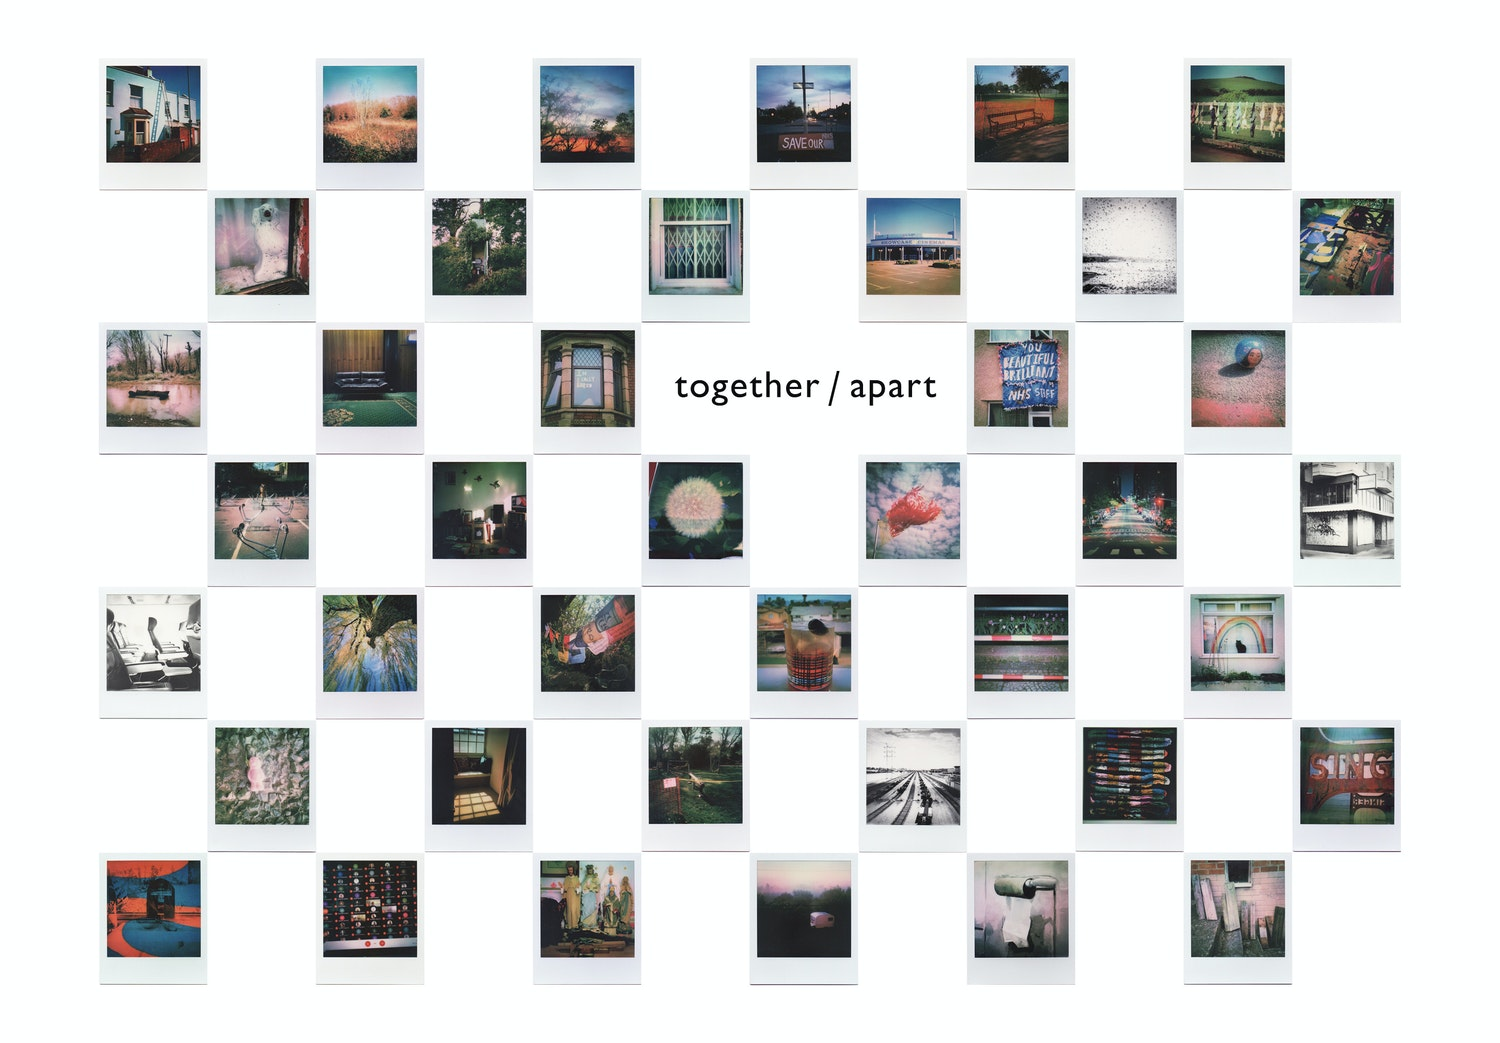 Together apart frontcover RGB BLR